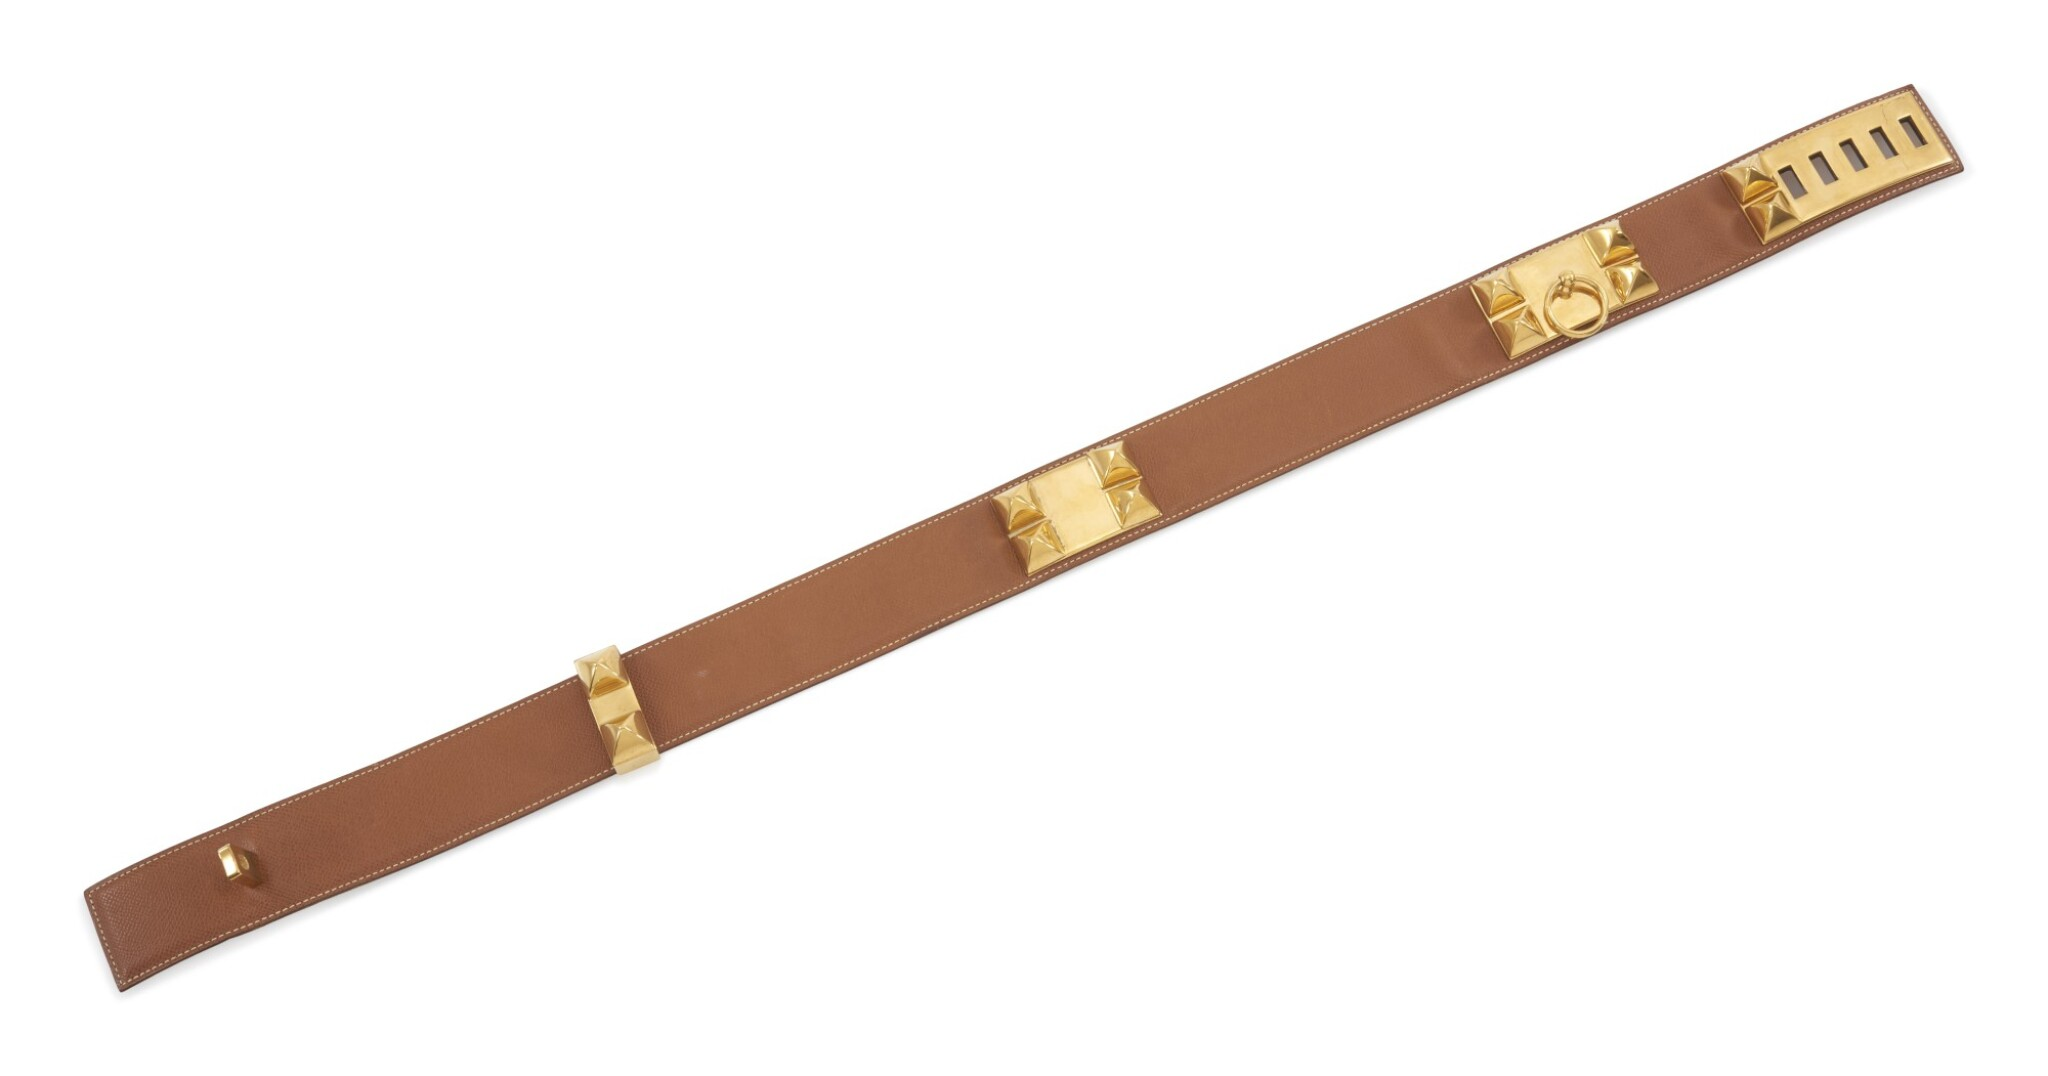 View 1 of Lot 7. Leather and gold plated hardware belt, Collier de chien 75, Hermès, 1995.